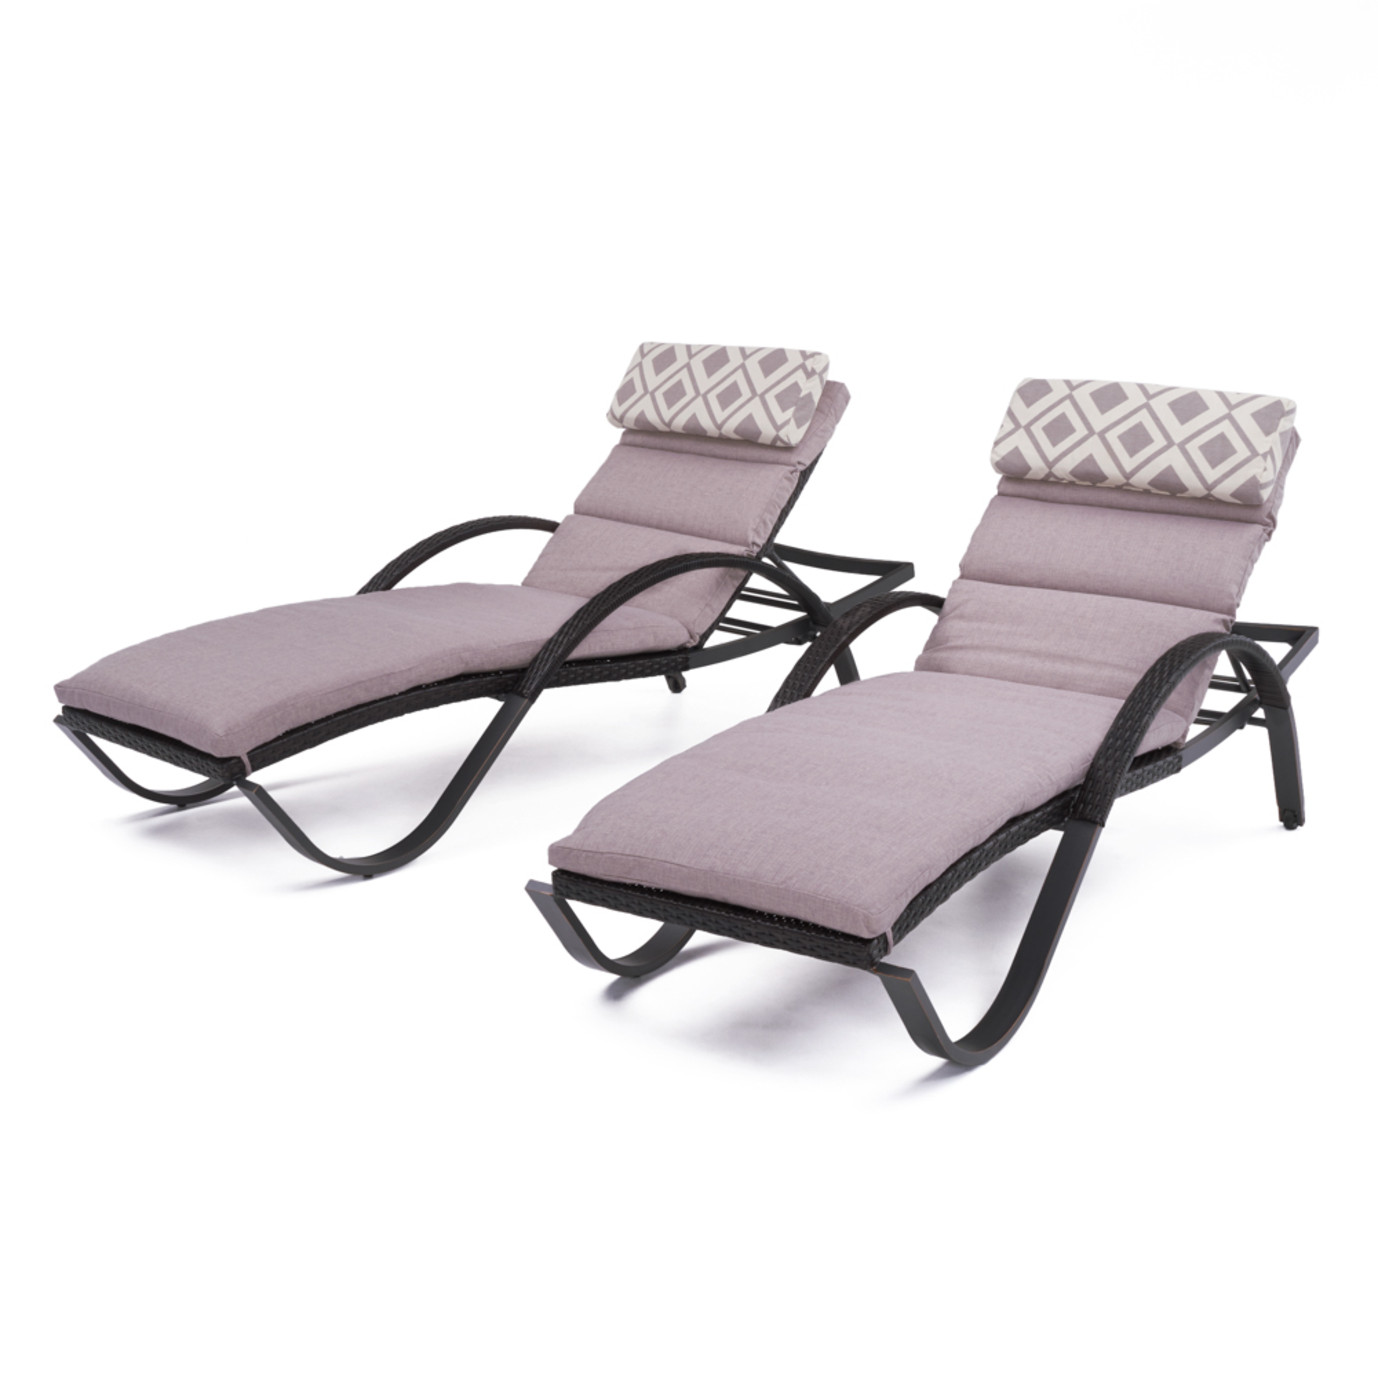 Deco™ 20pc Outdoor Estate Set - Wisteria Lavender